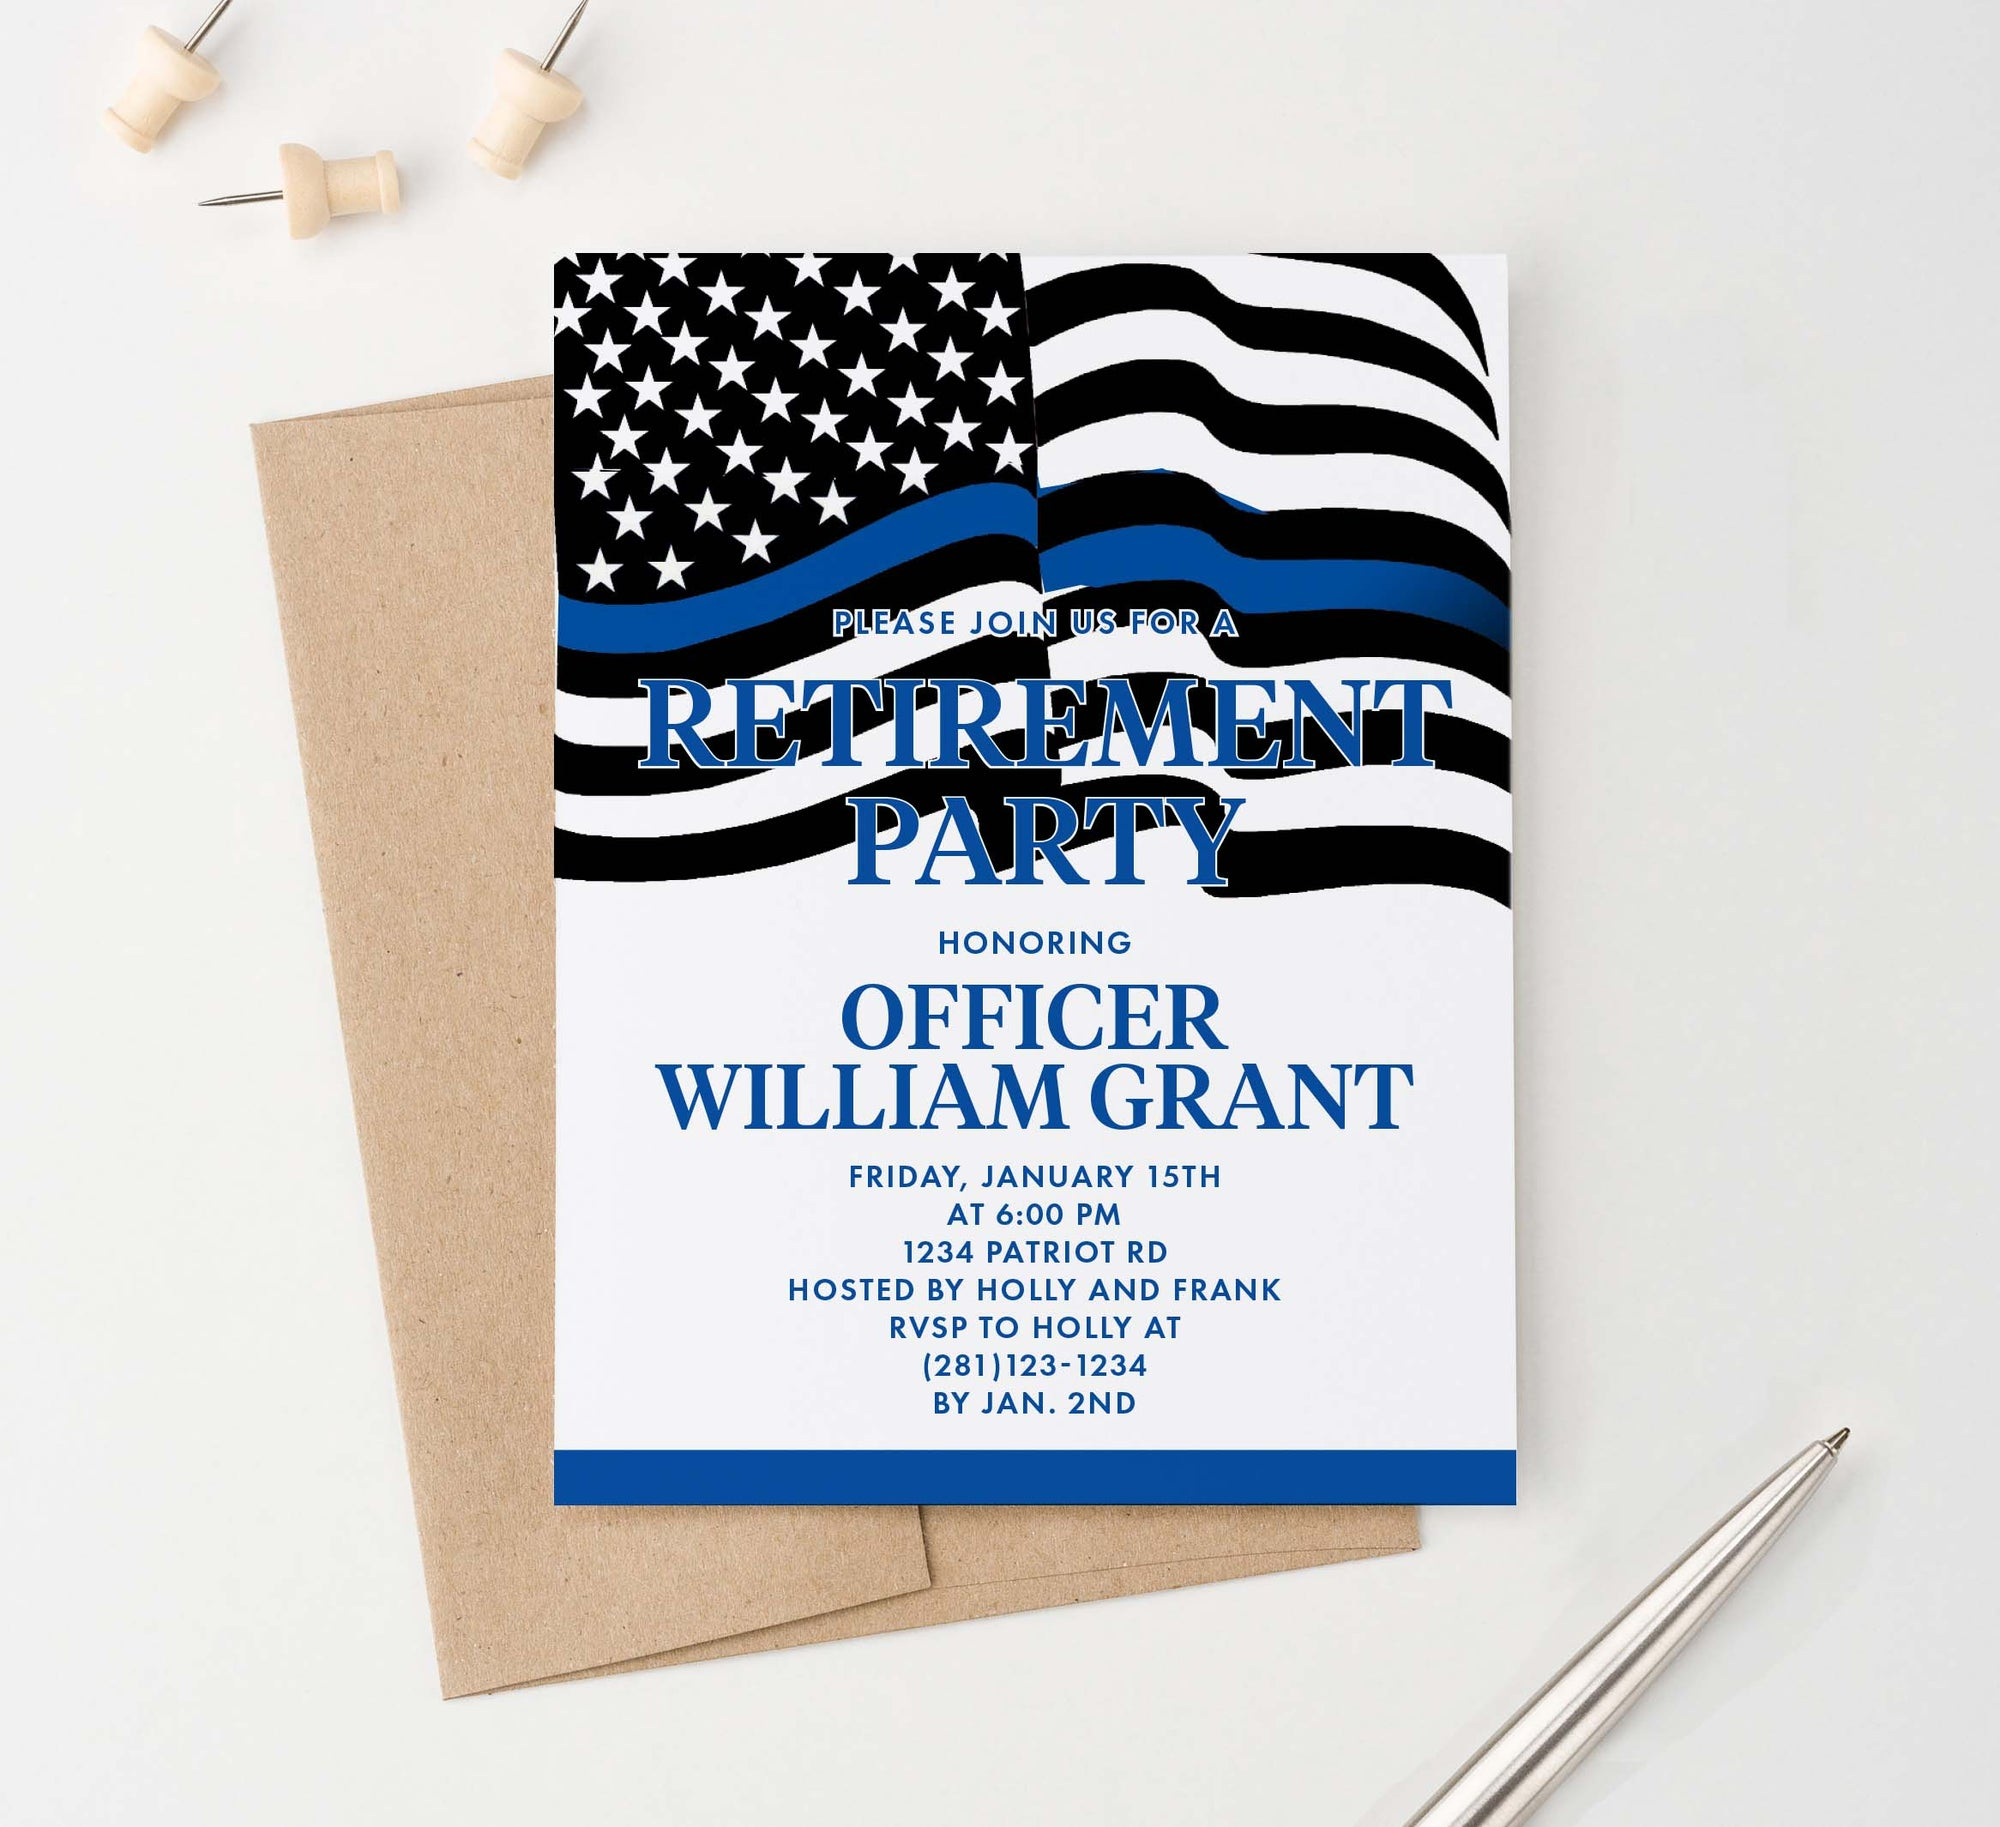 Personalized Police Retirement Party Invitations